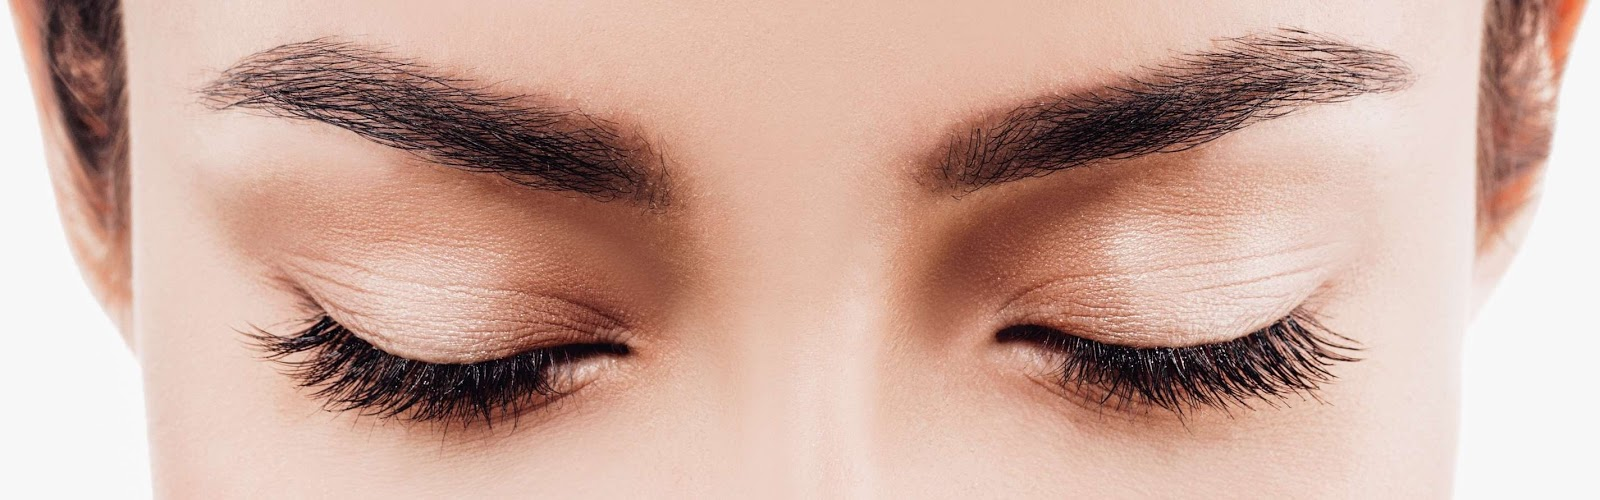 Eyelash lift, tint and eyebrow shaping